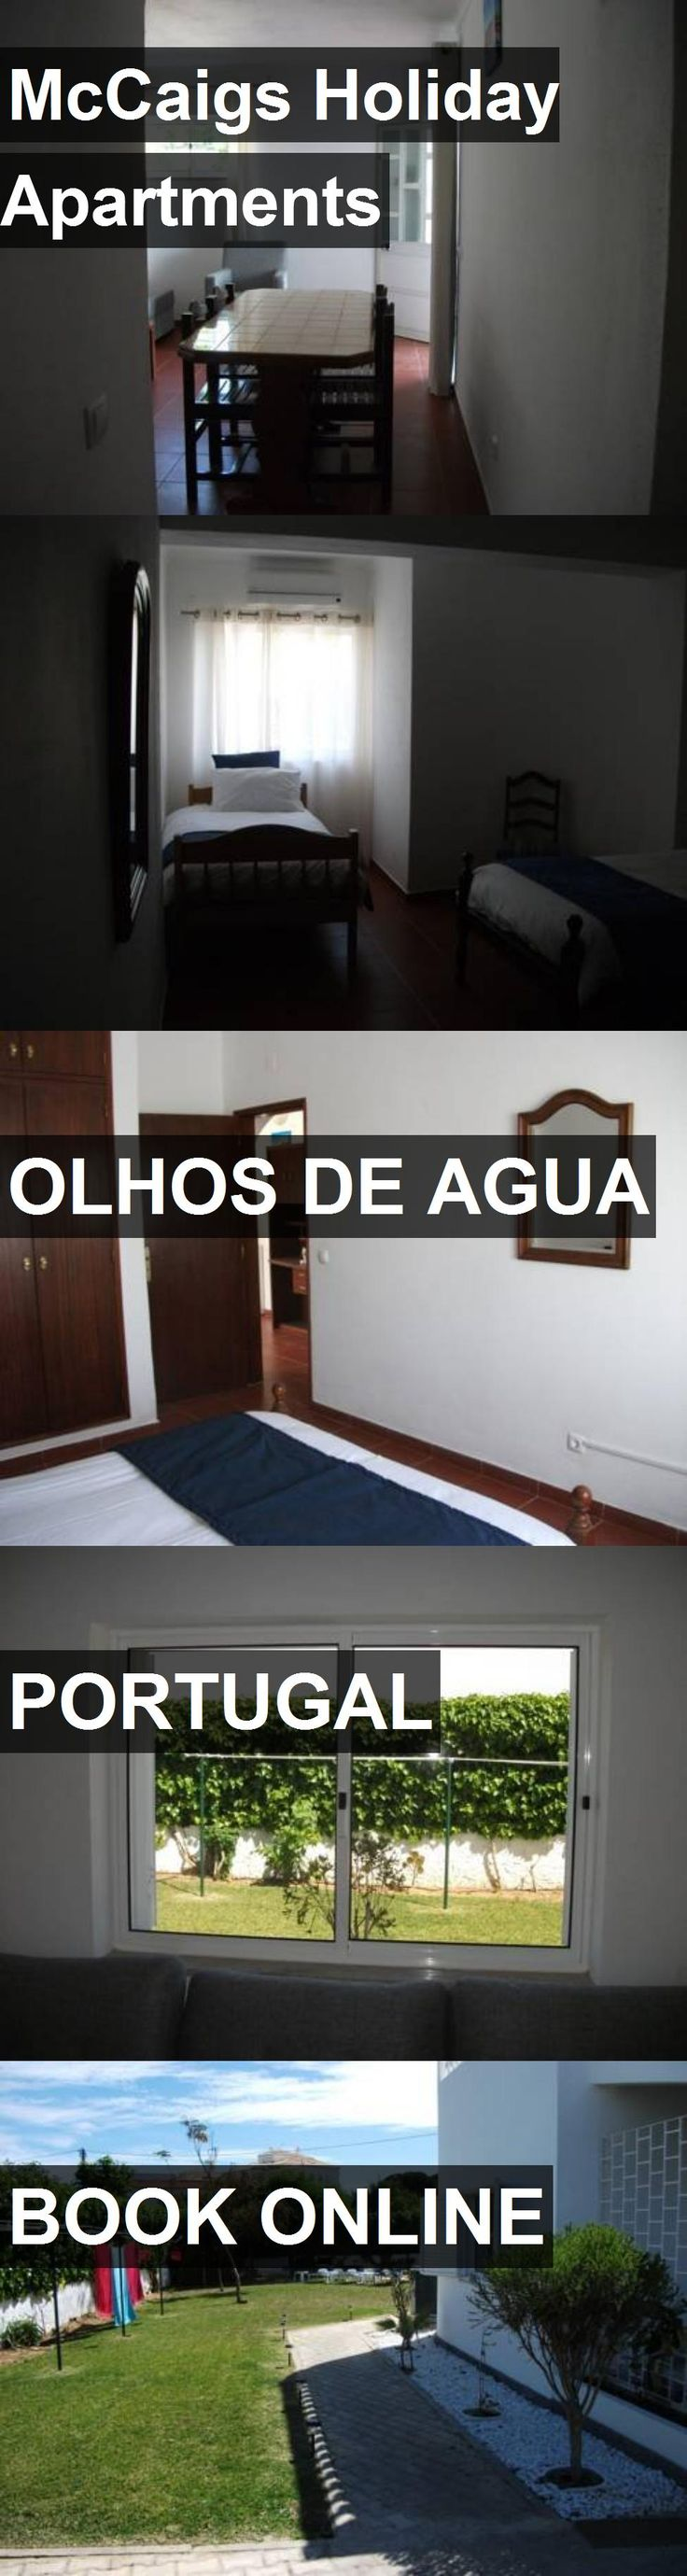 McCaigs Holiday Apartments in Olhos de Agua, Portugal. For more information, photos, reviews and best prices please follow the link. #Portugal #OlhosdeAgua #travel #vacation #apartment